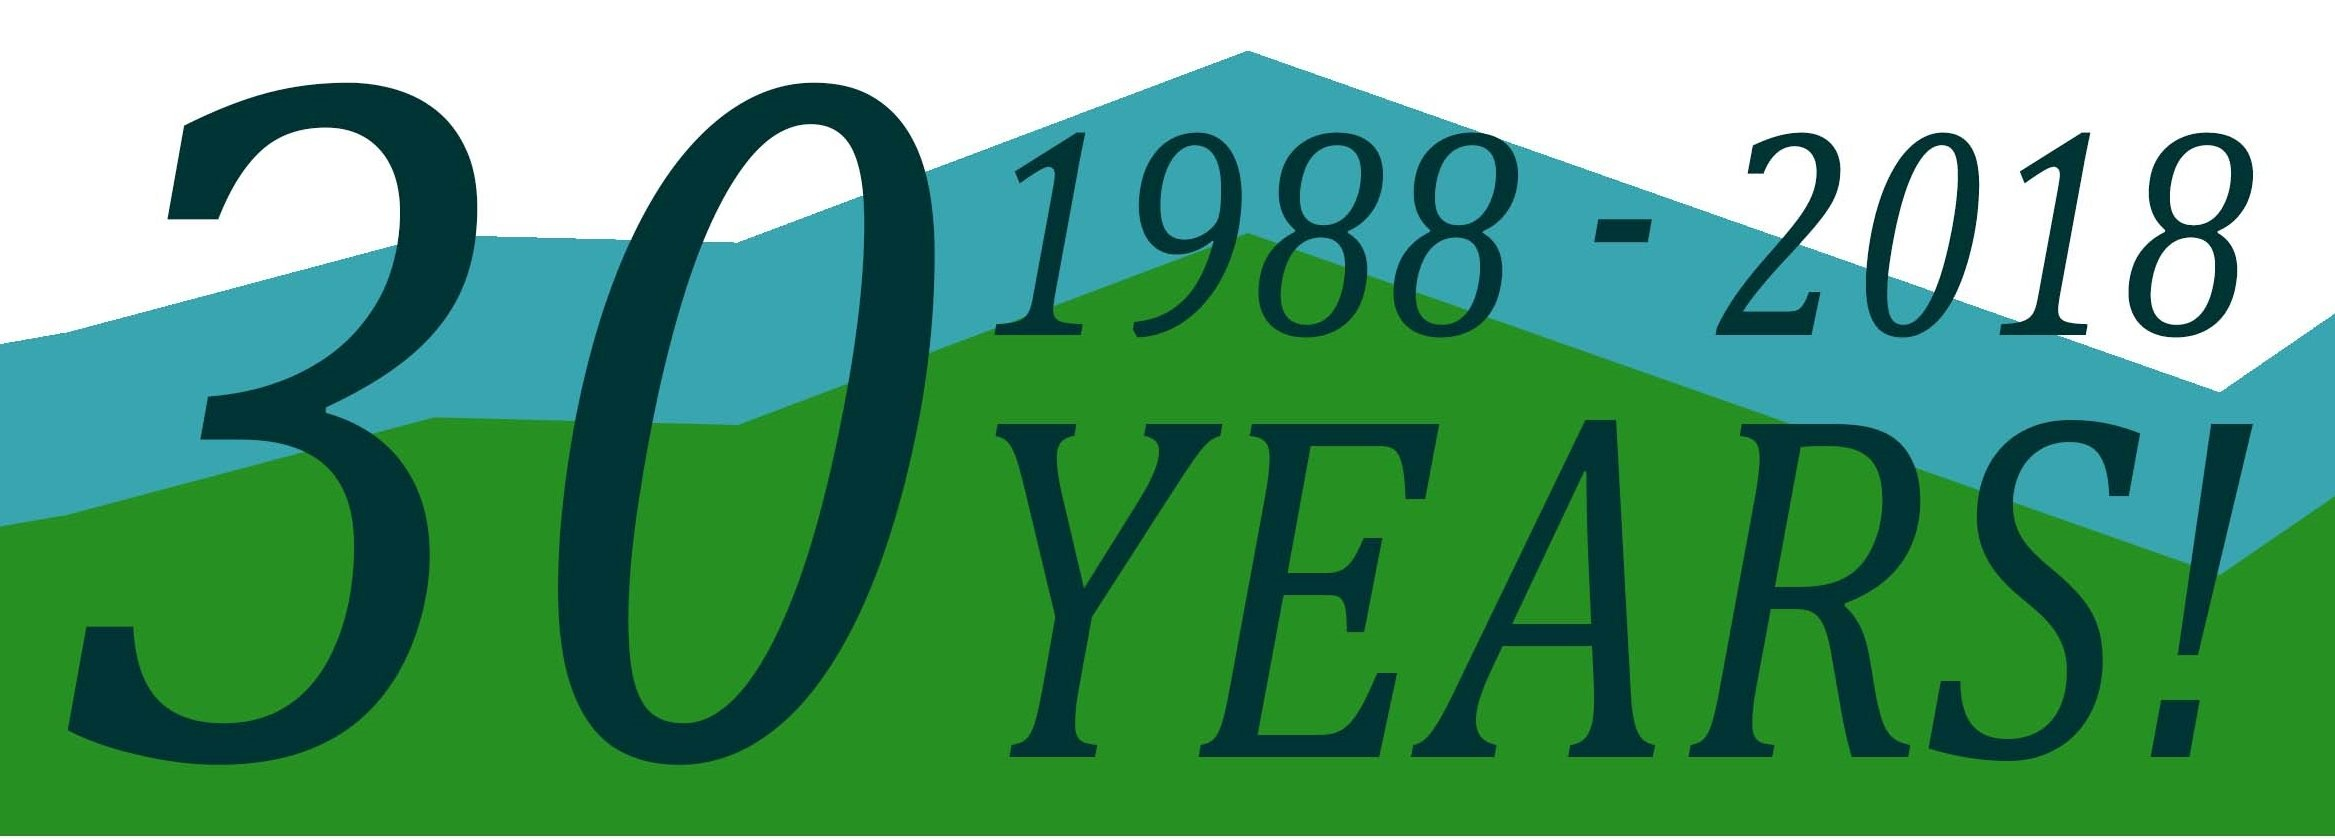 At the very start of 2018, we were proud to announce this year marked our 30 year anniversary!